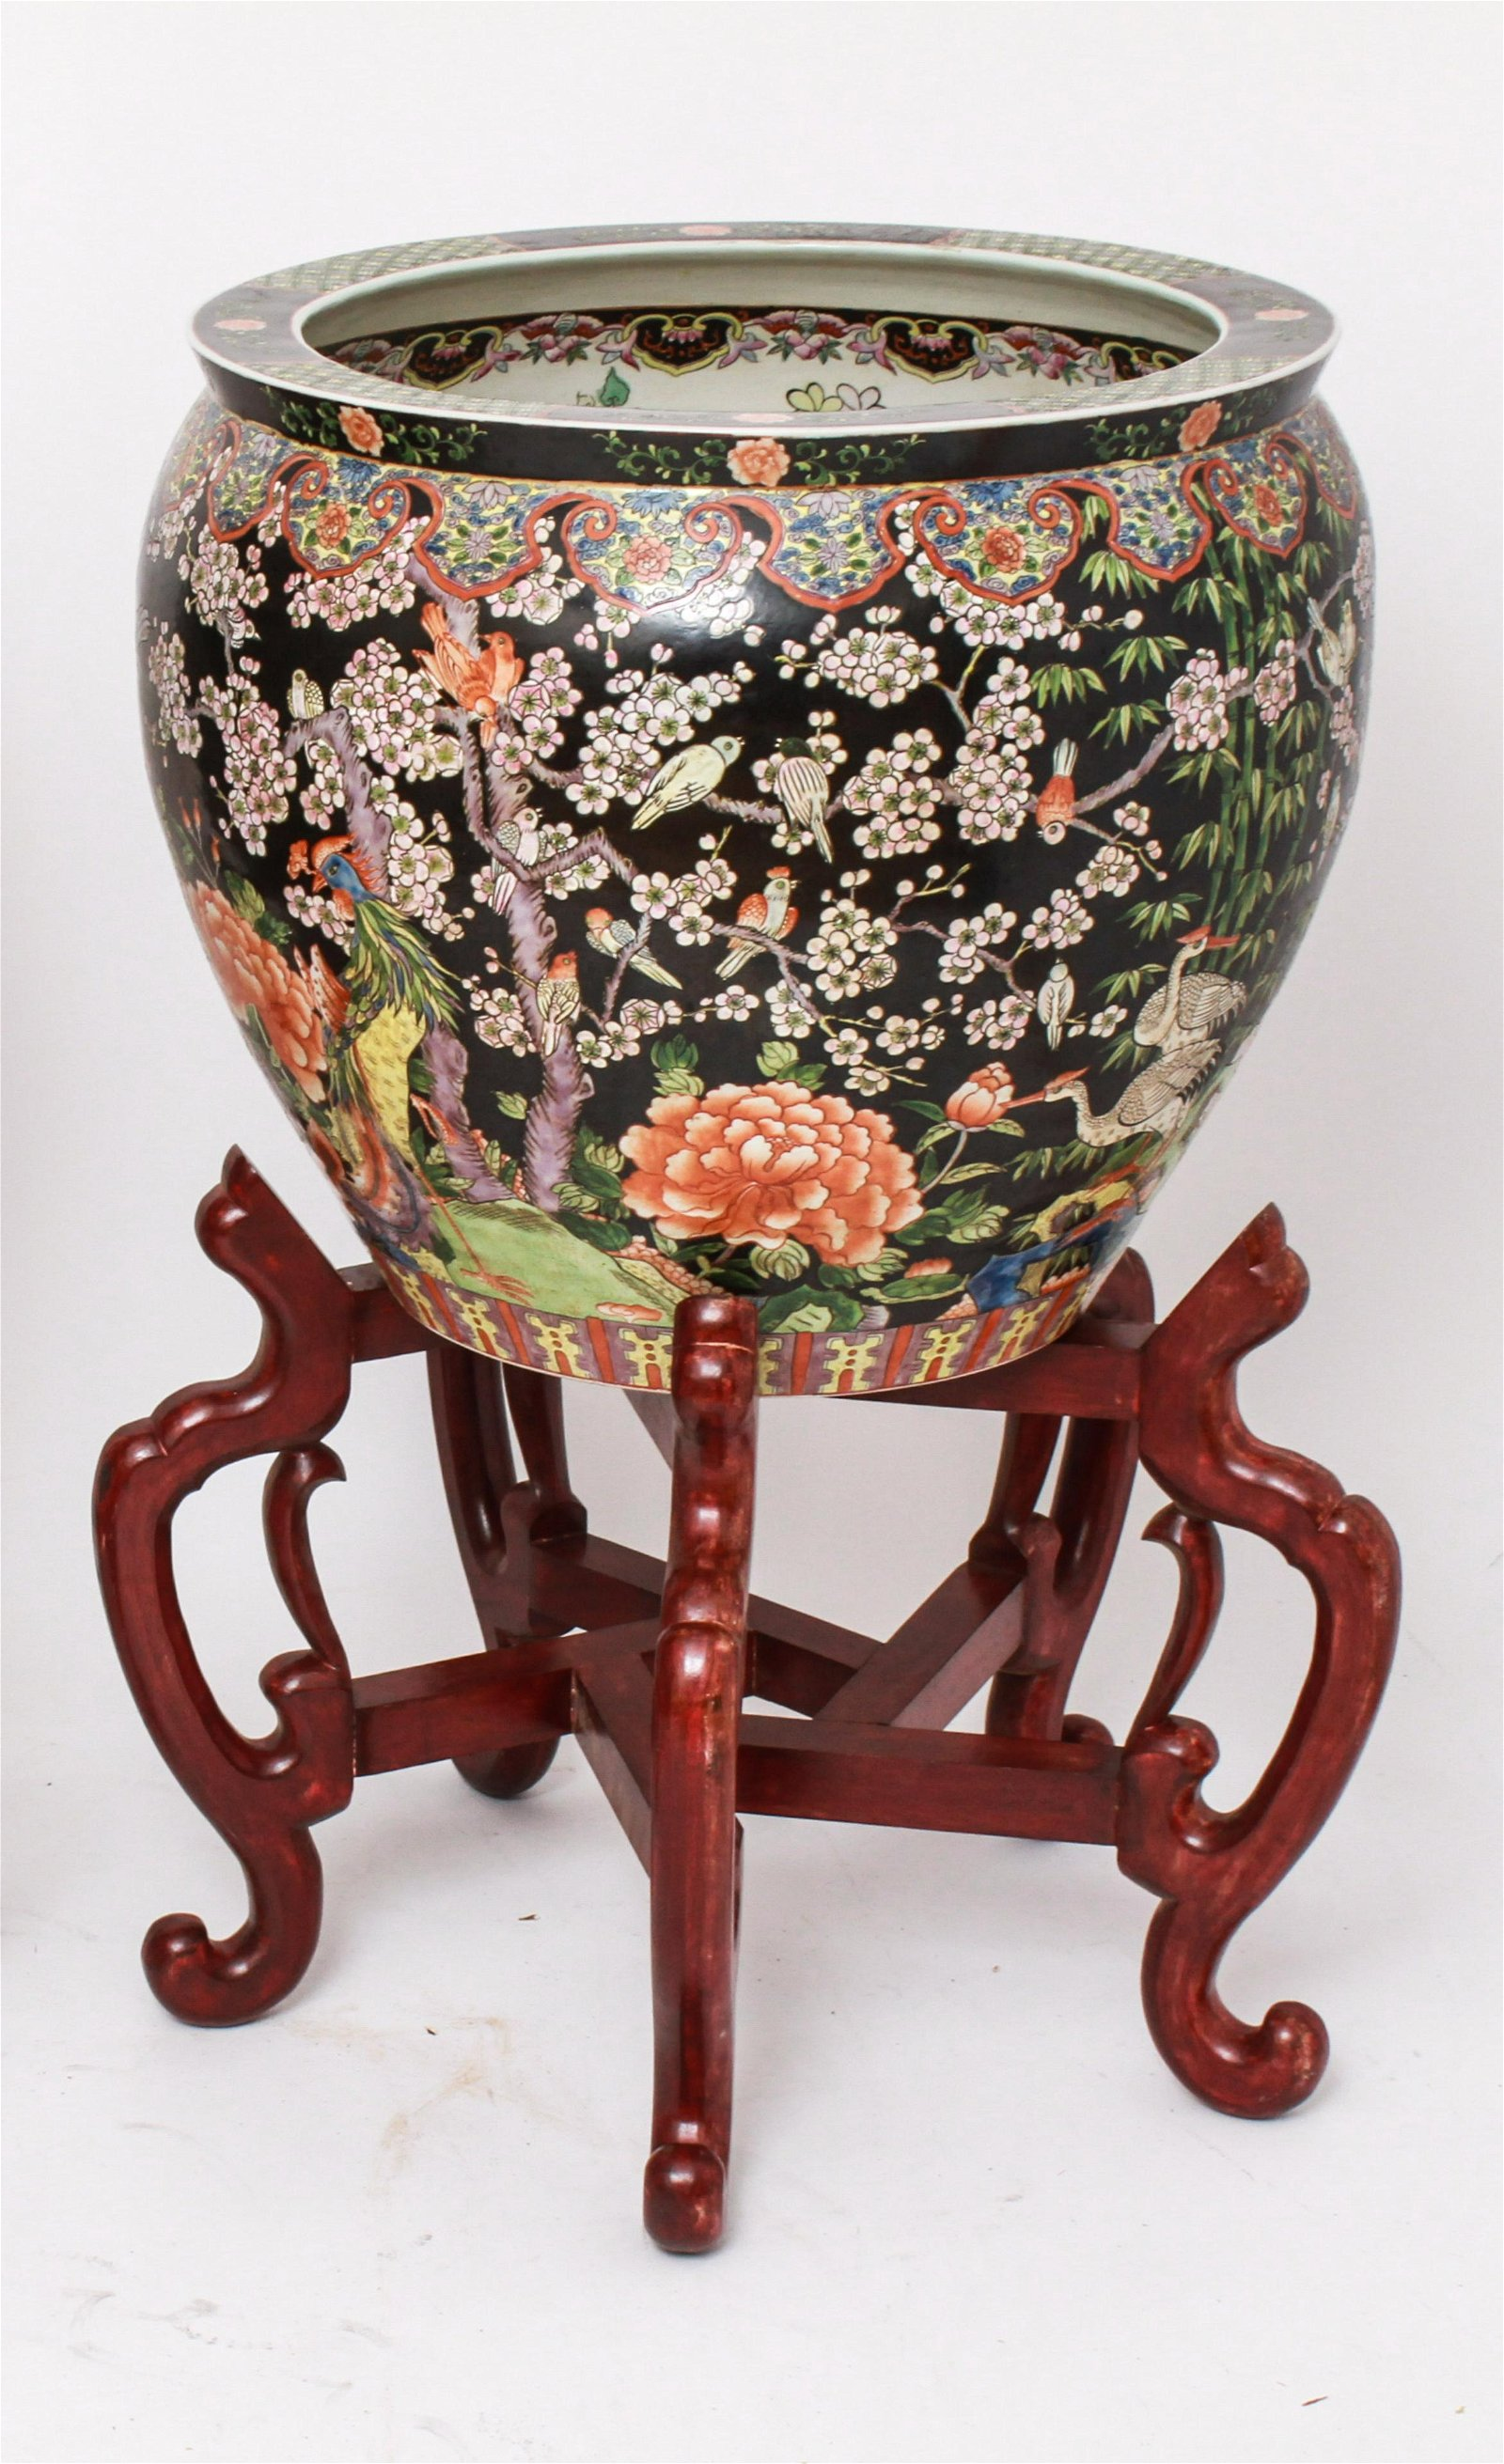 Chinese Porcelain Famille Noire Fish Bowl & Stand